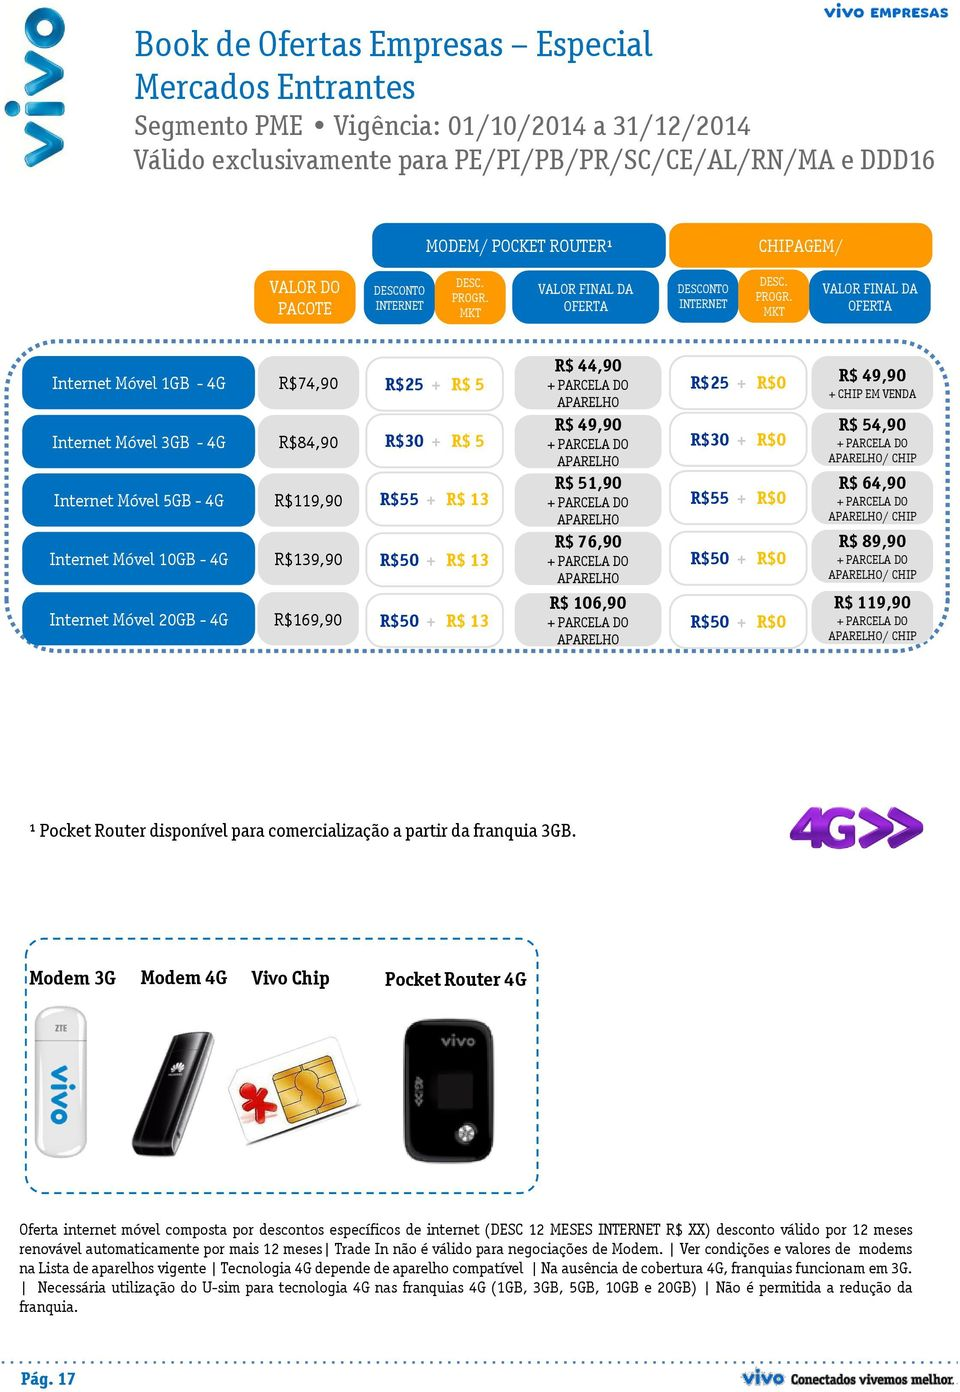 MKT VALOR FINAL DA OFERTA Internet Móvel 1GB - 4G Internet Móvel 3GB - 4G Internet Móvel 5GB - 4G Internet Móvel 10GB - 4G Internet Móvel 20GB - 4G R$74,90 R$84,90 R$119,90 R$139,90 R$169,90 R$25 +